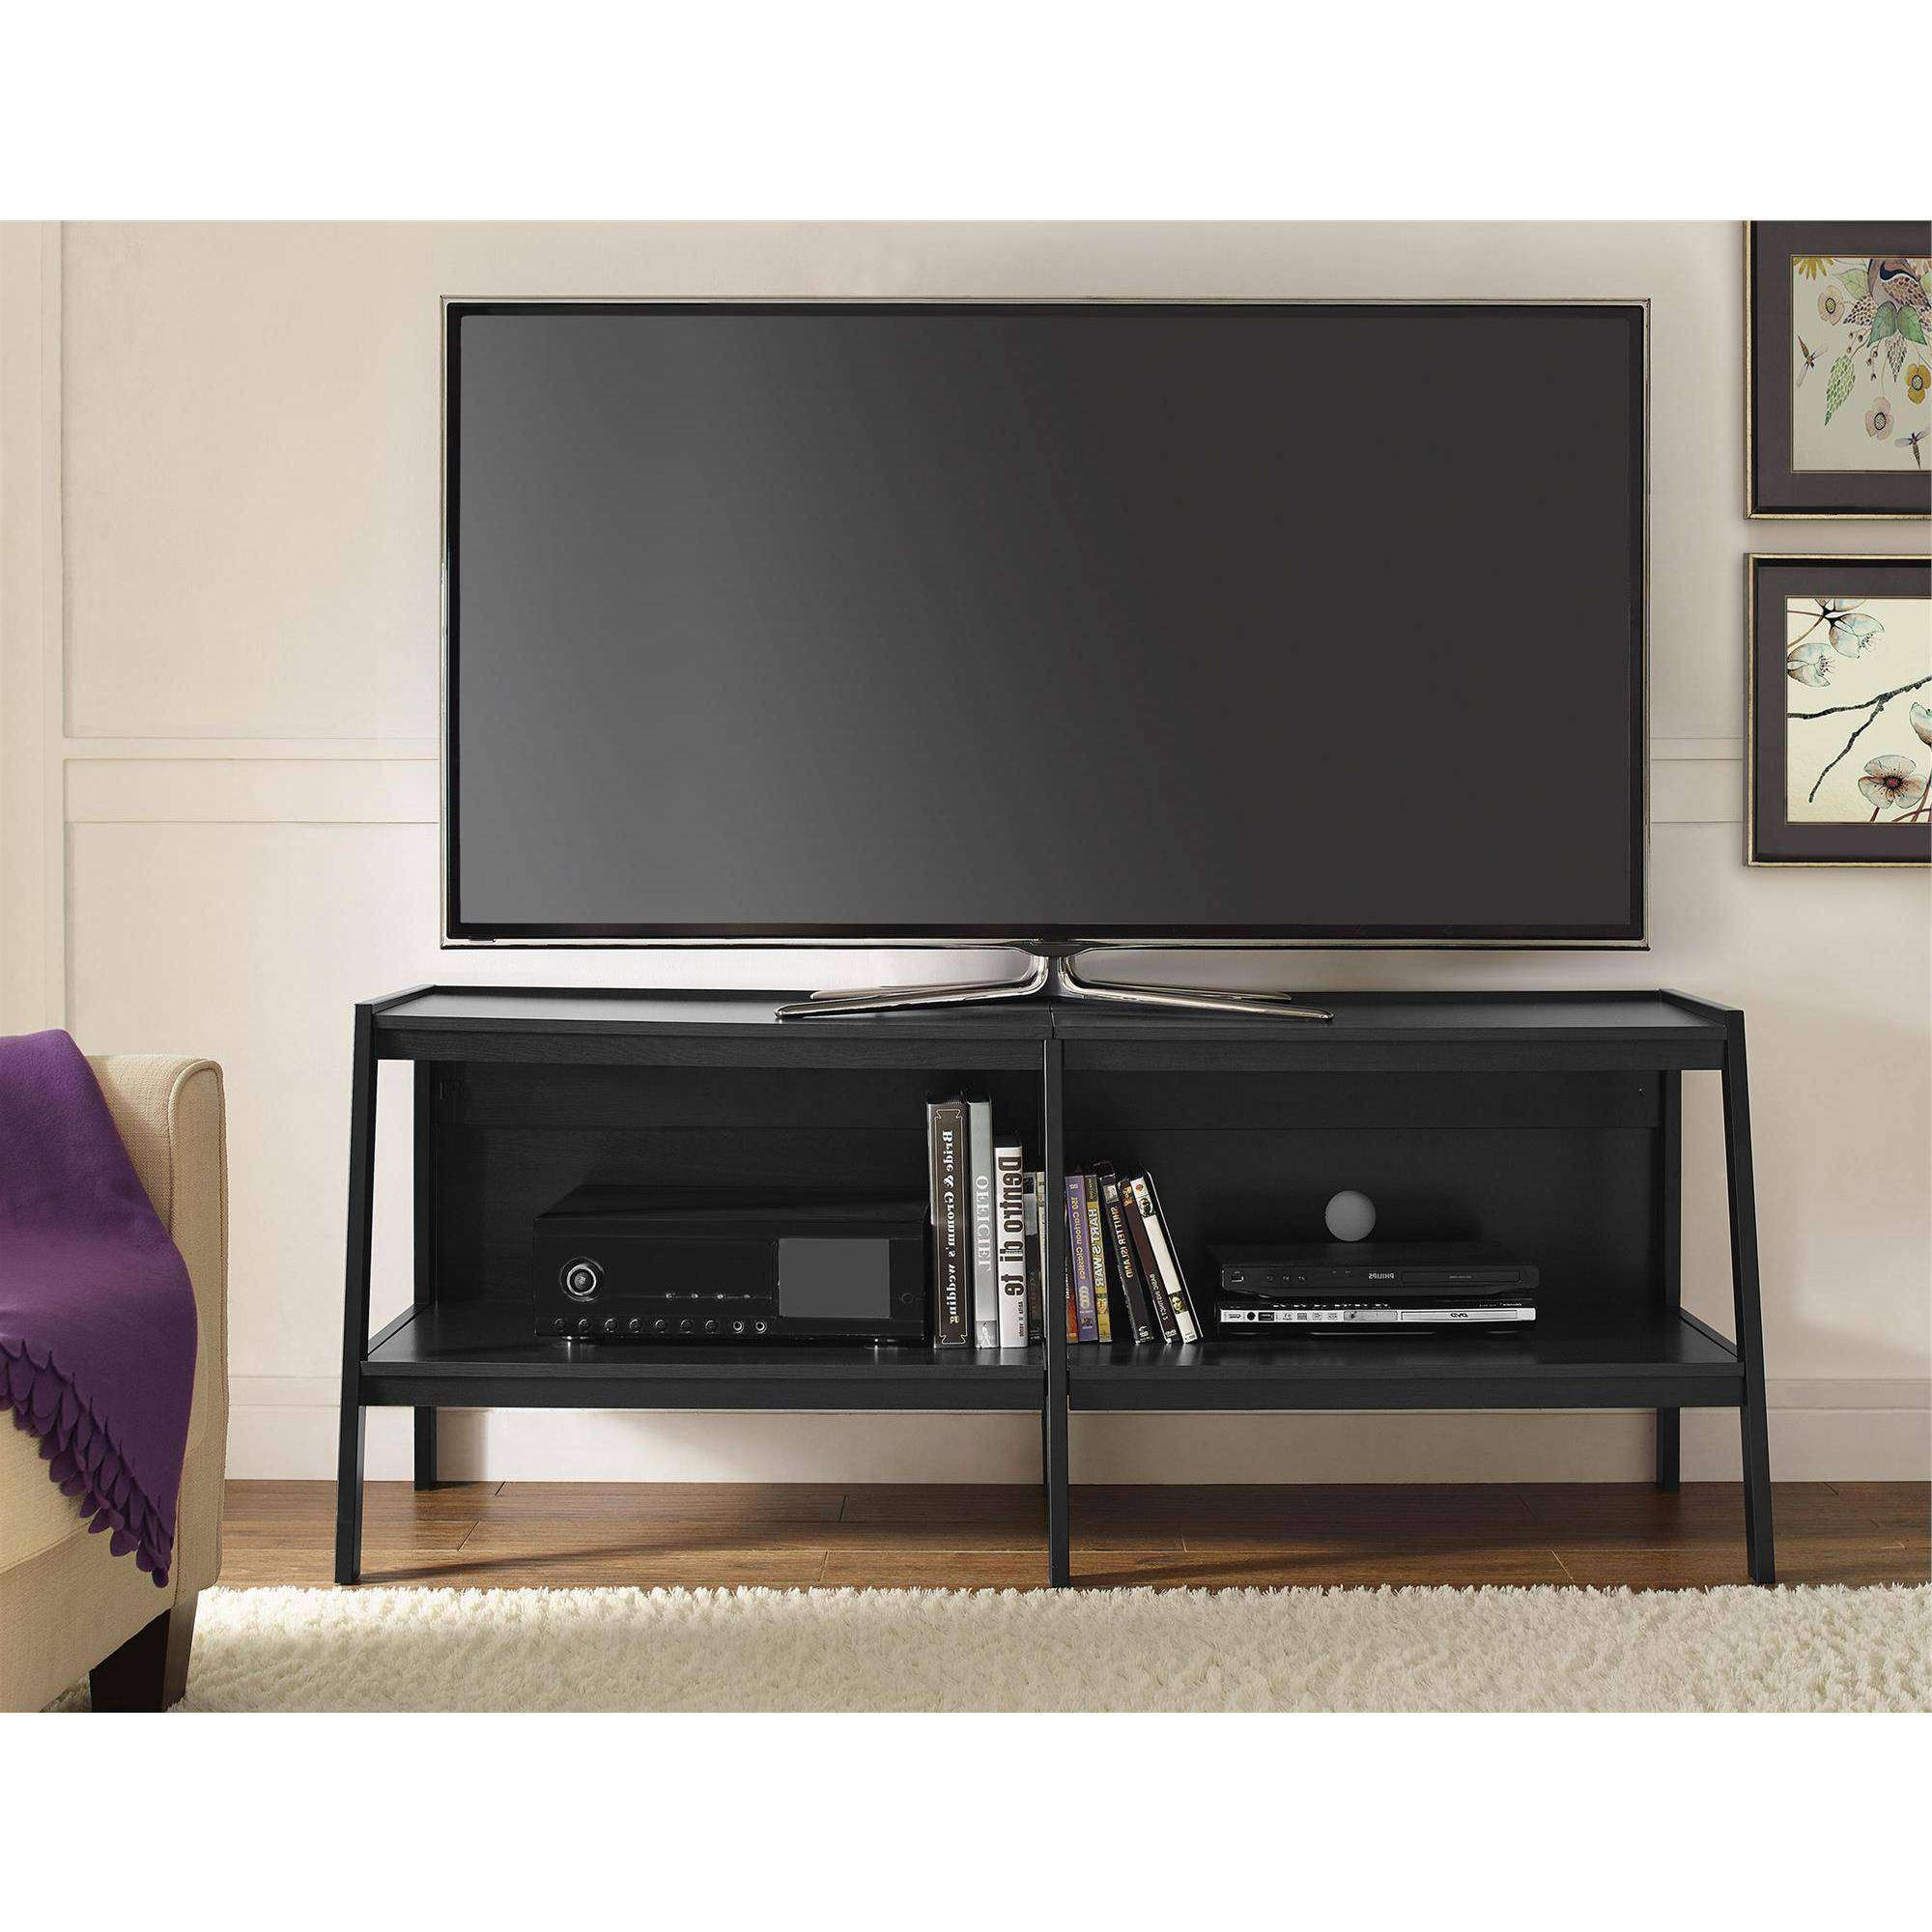 60 Inch Tv Stands Inside Tv Stands 38 Inches Wide (View 9 of 15)